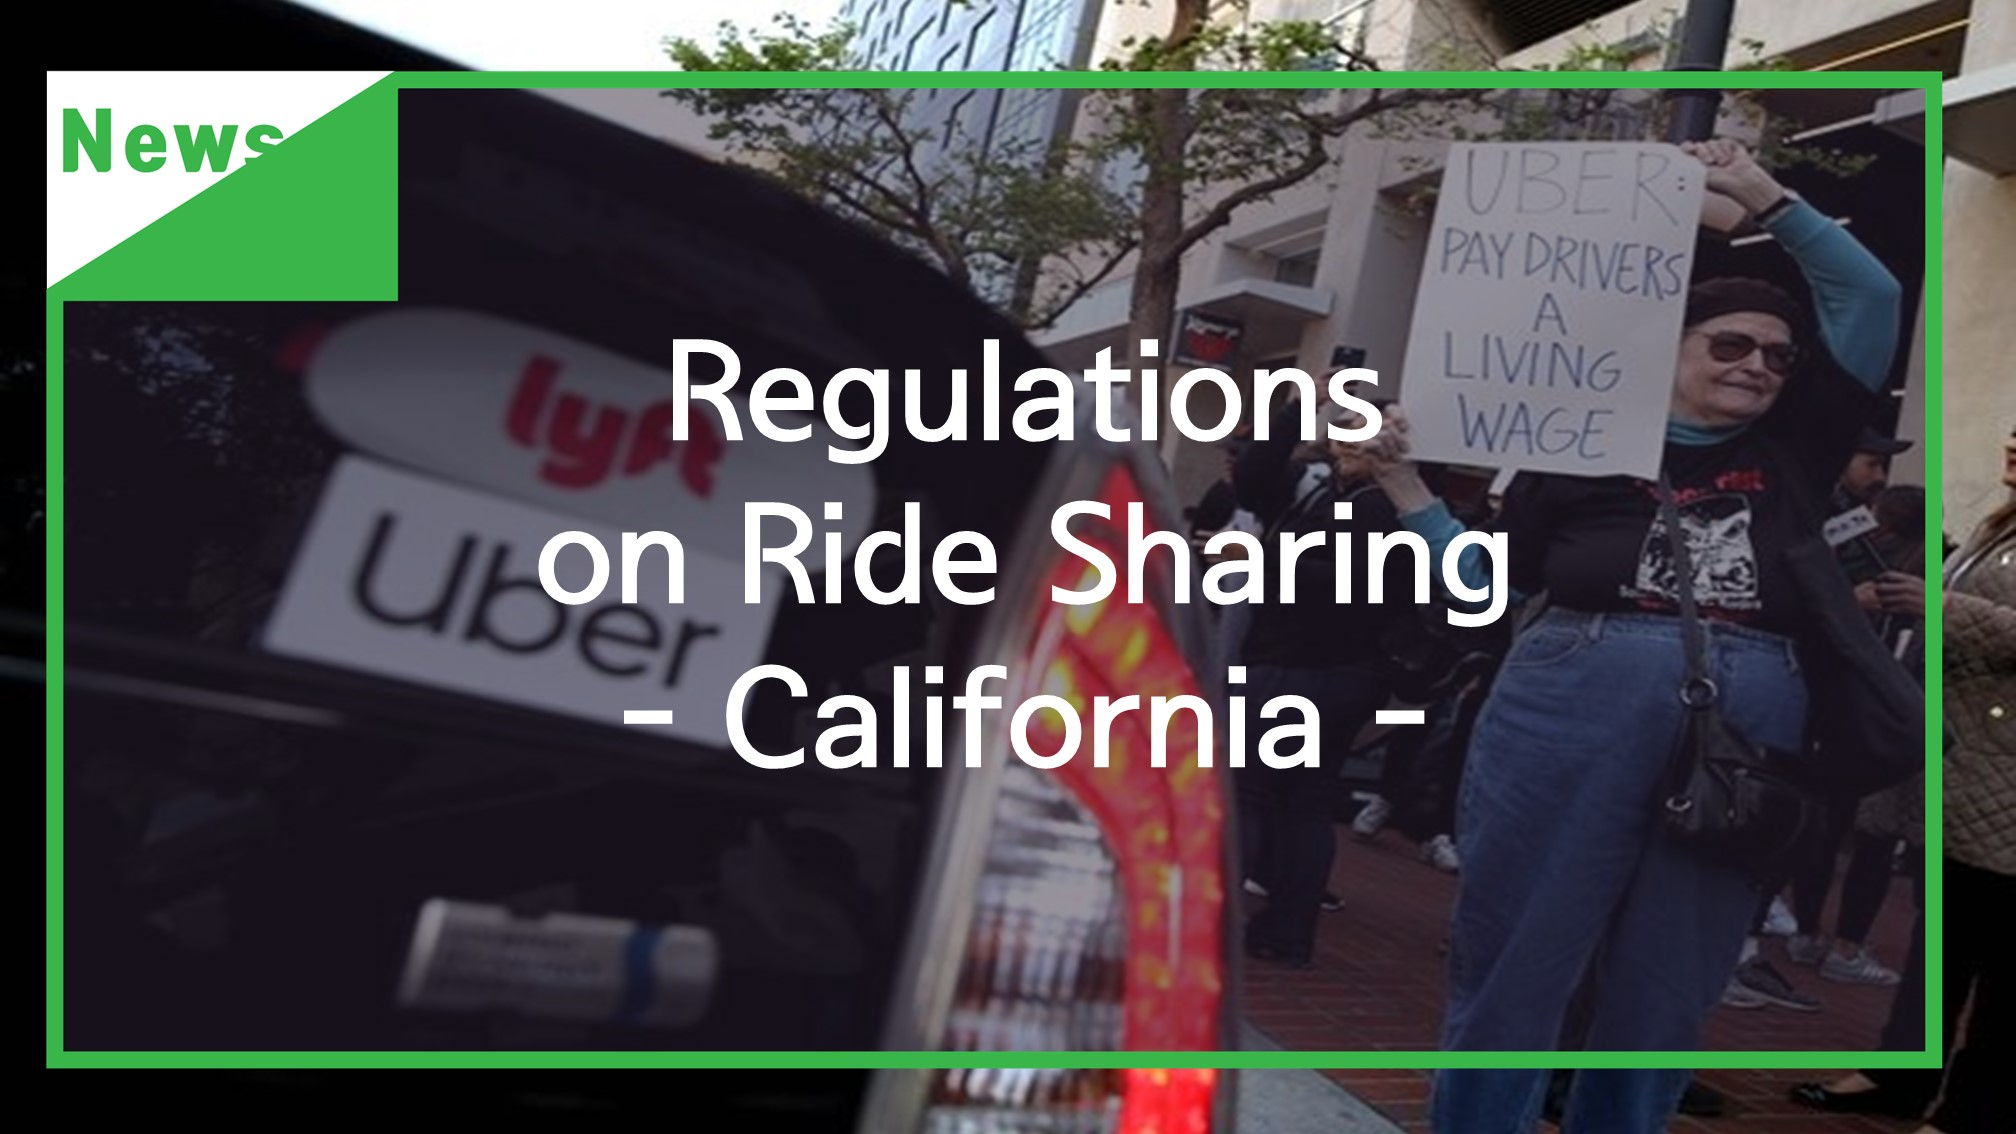 [News] Regulations on Ride Sharing - California